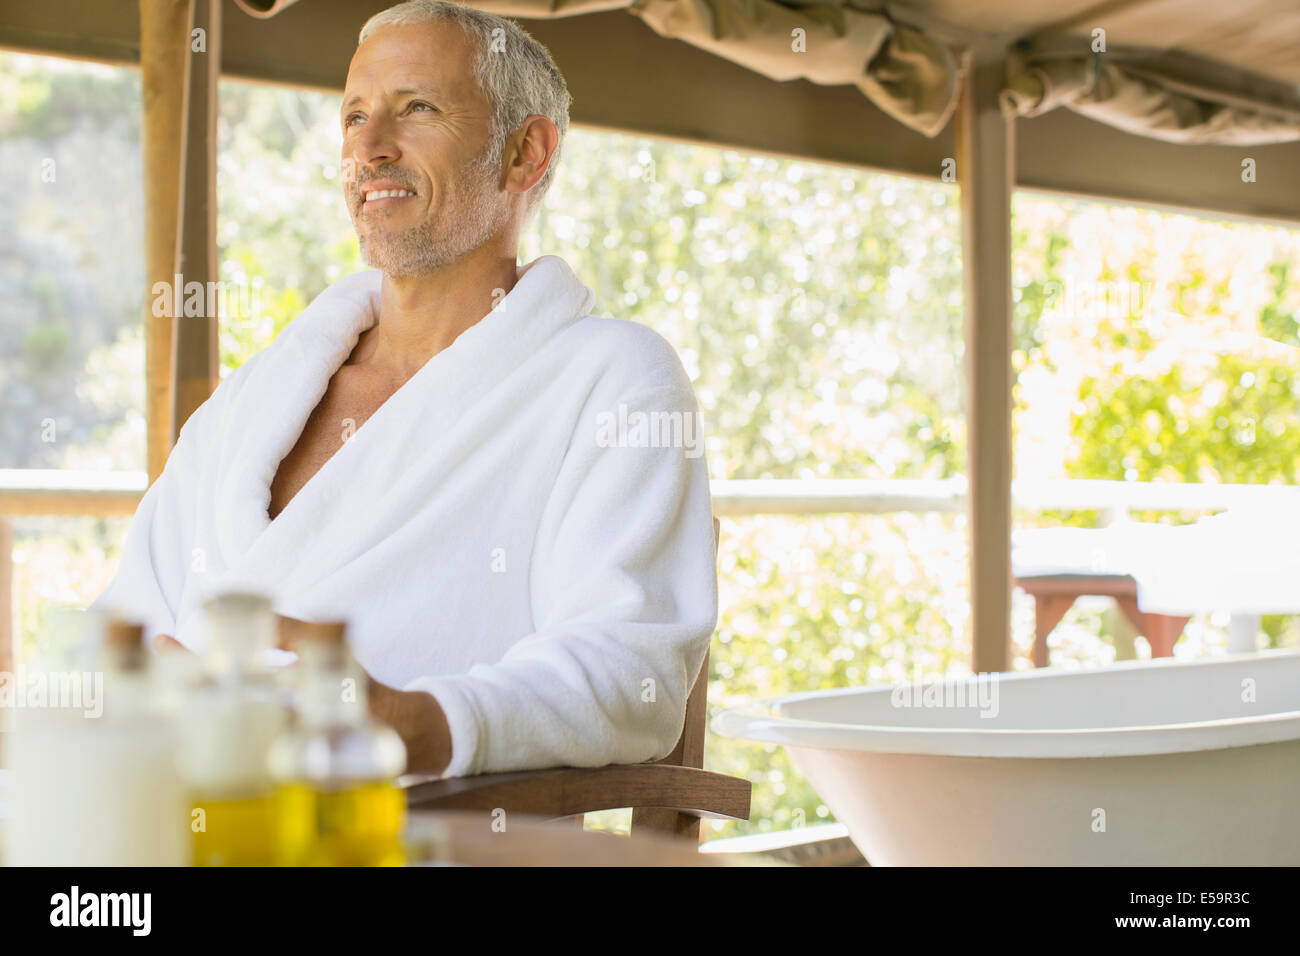 Man relaxing in spa Photo Stock